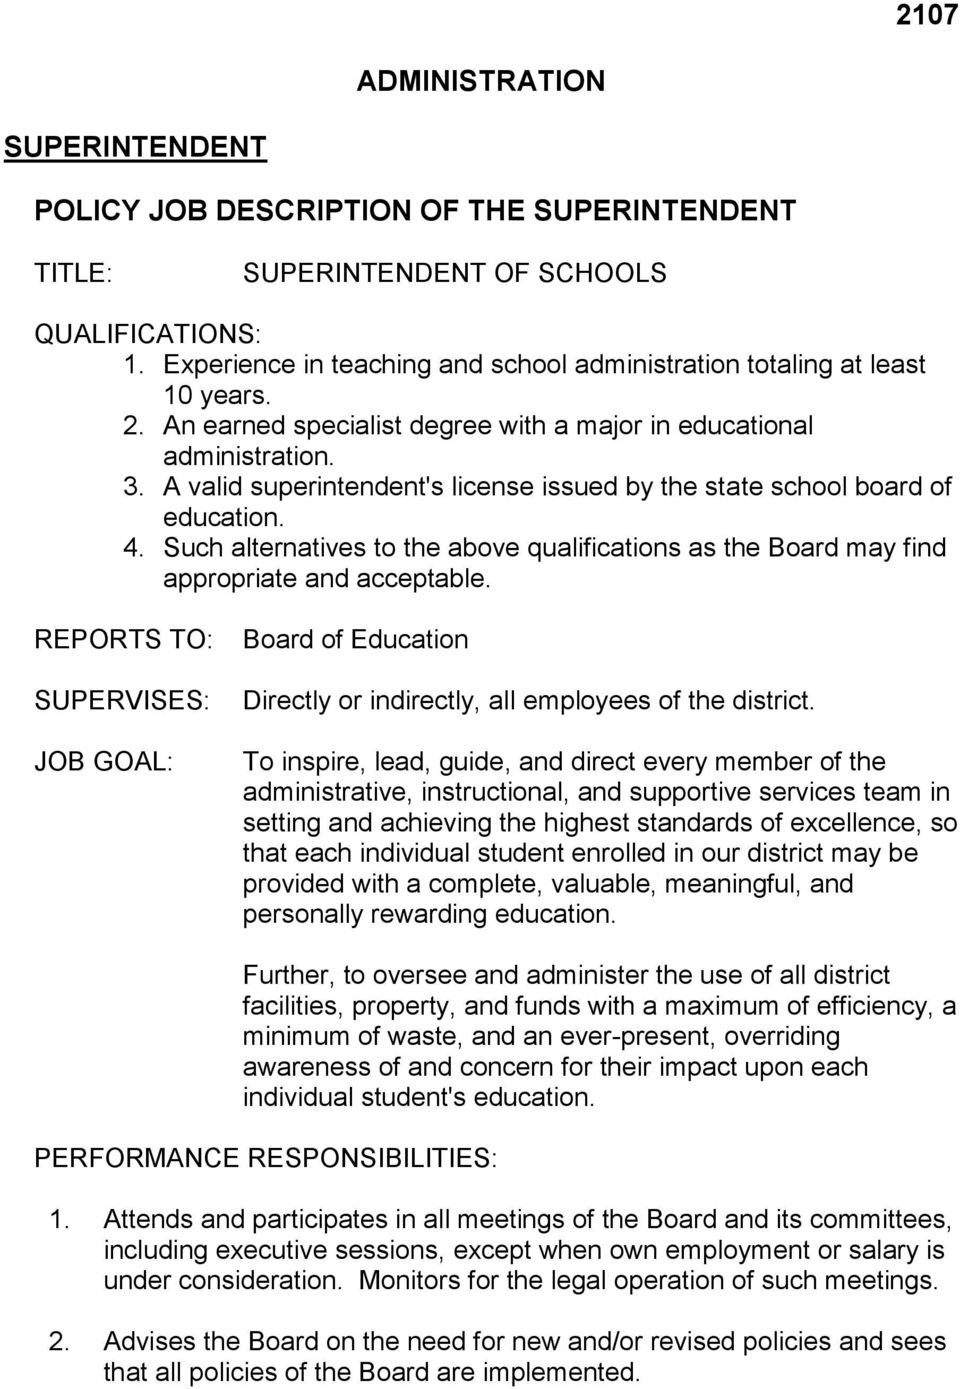 A valid superintendent's license issued by the state school board of education. 4. Such alternatives to the above qualifications as the Board may find appropriate and acceptable.